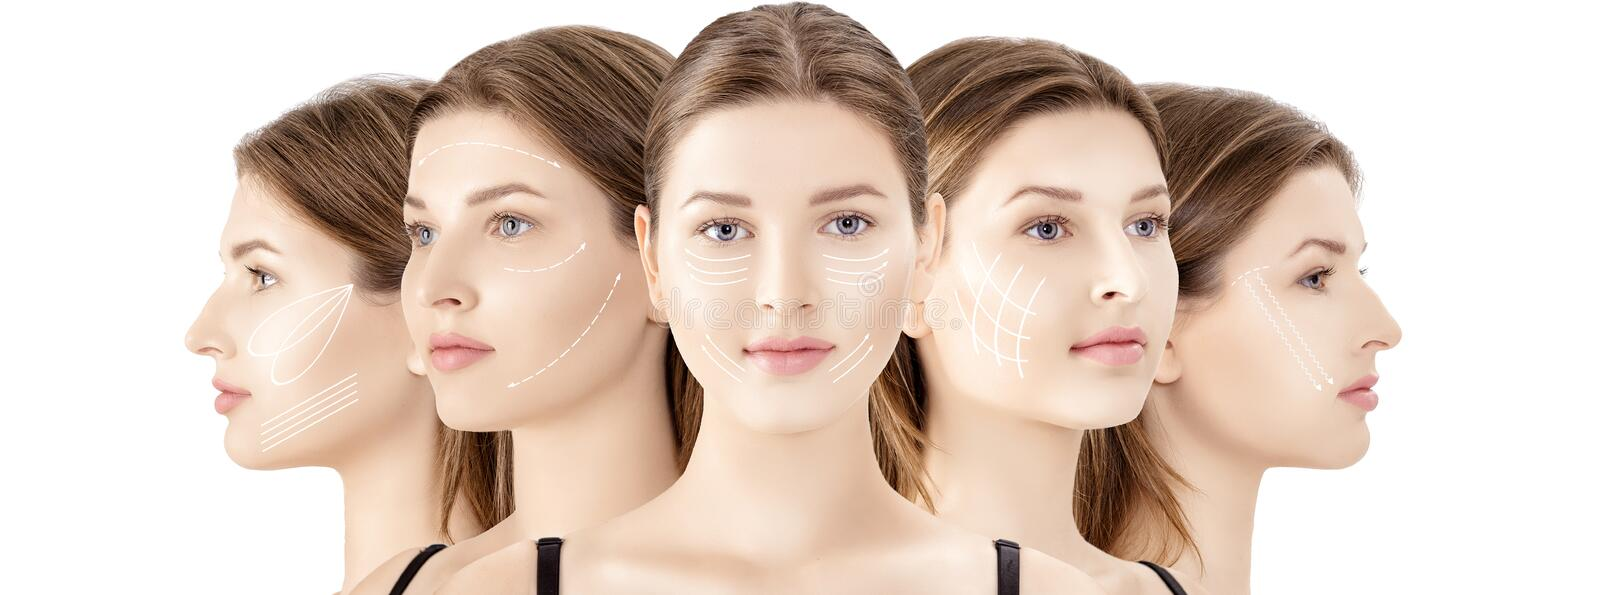 Profile portrait of young slim woman in black lingerie isolated on white background stock photos